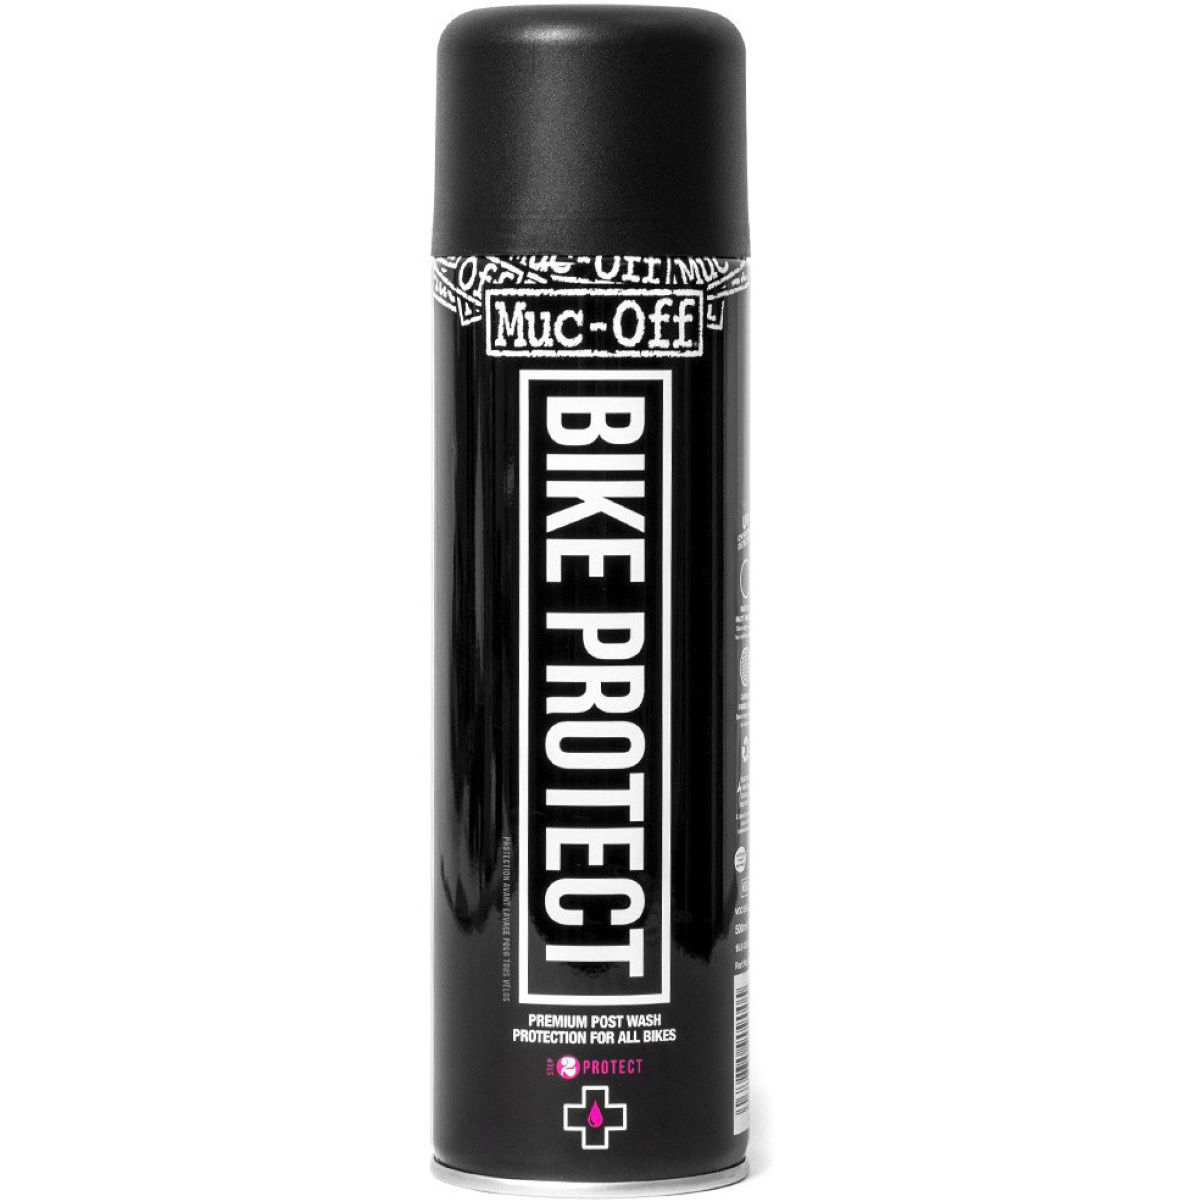 Muc-Off Muc-Off Bike Protect 500ml Aerosol   Lube